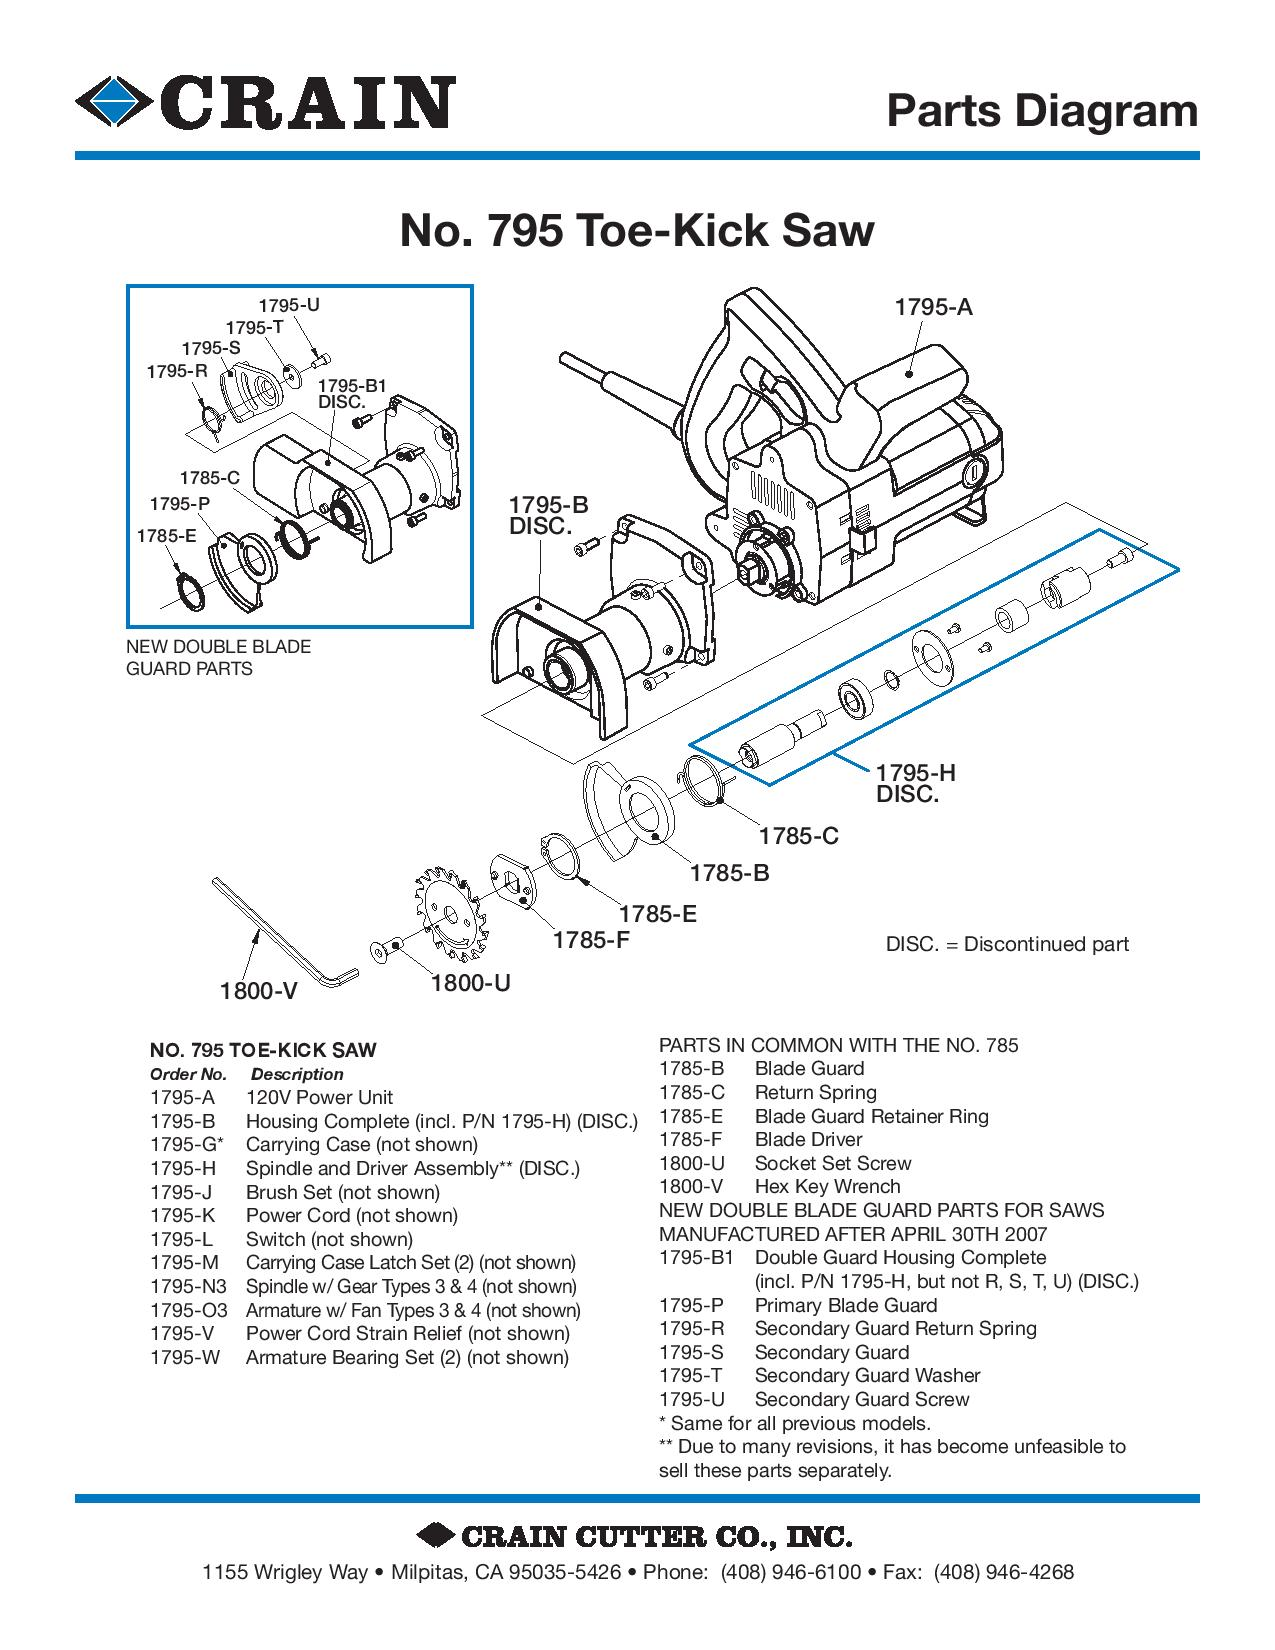 795 Toe-Kick Saw